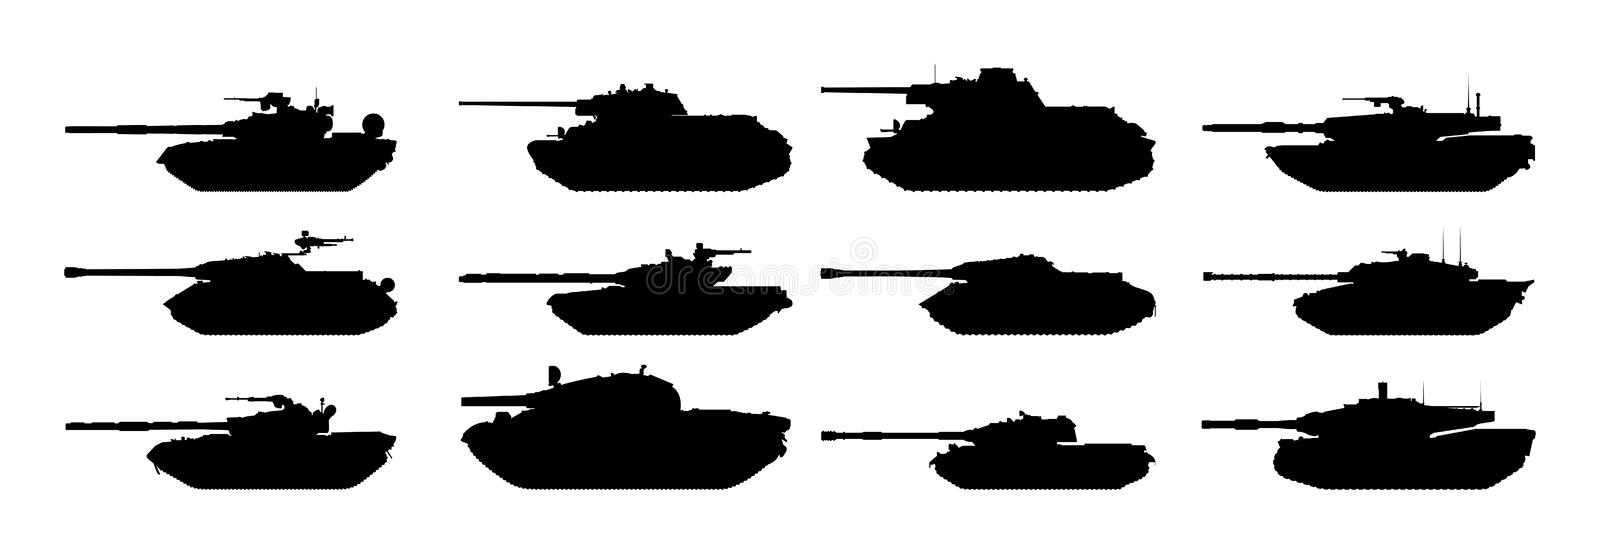 Tanks silhouettes set. stock photo